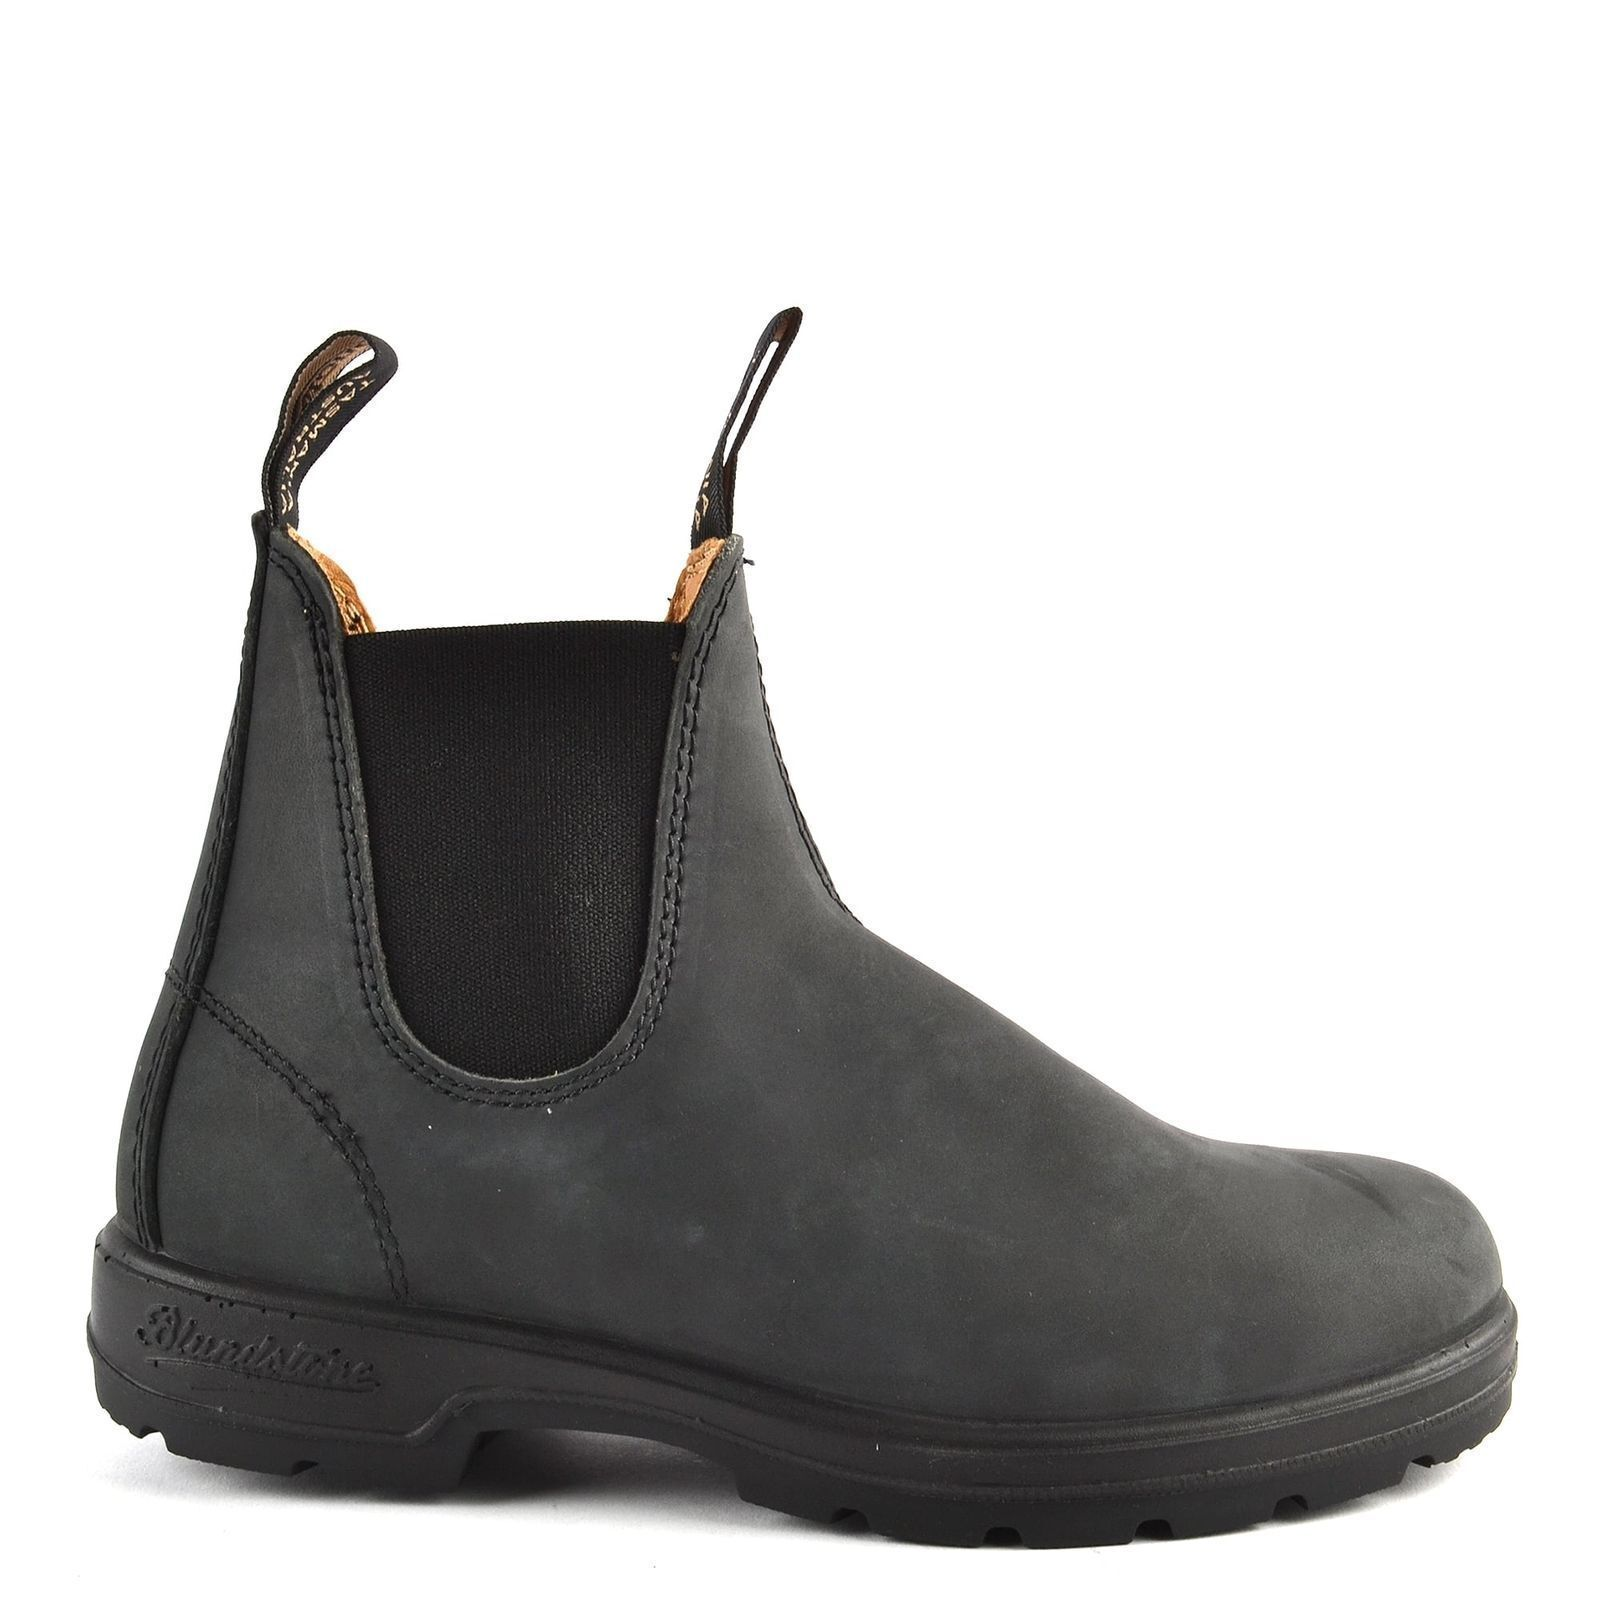 40d32b893b4 NEW Blundstone Style 587 Rustic Black Leather Boots for Men